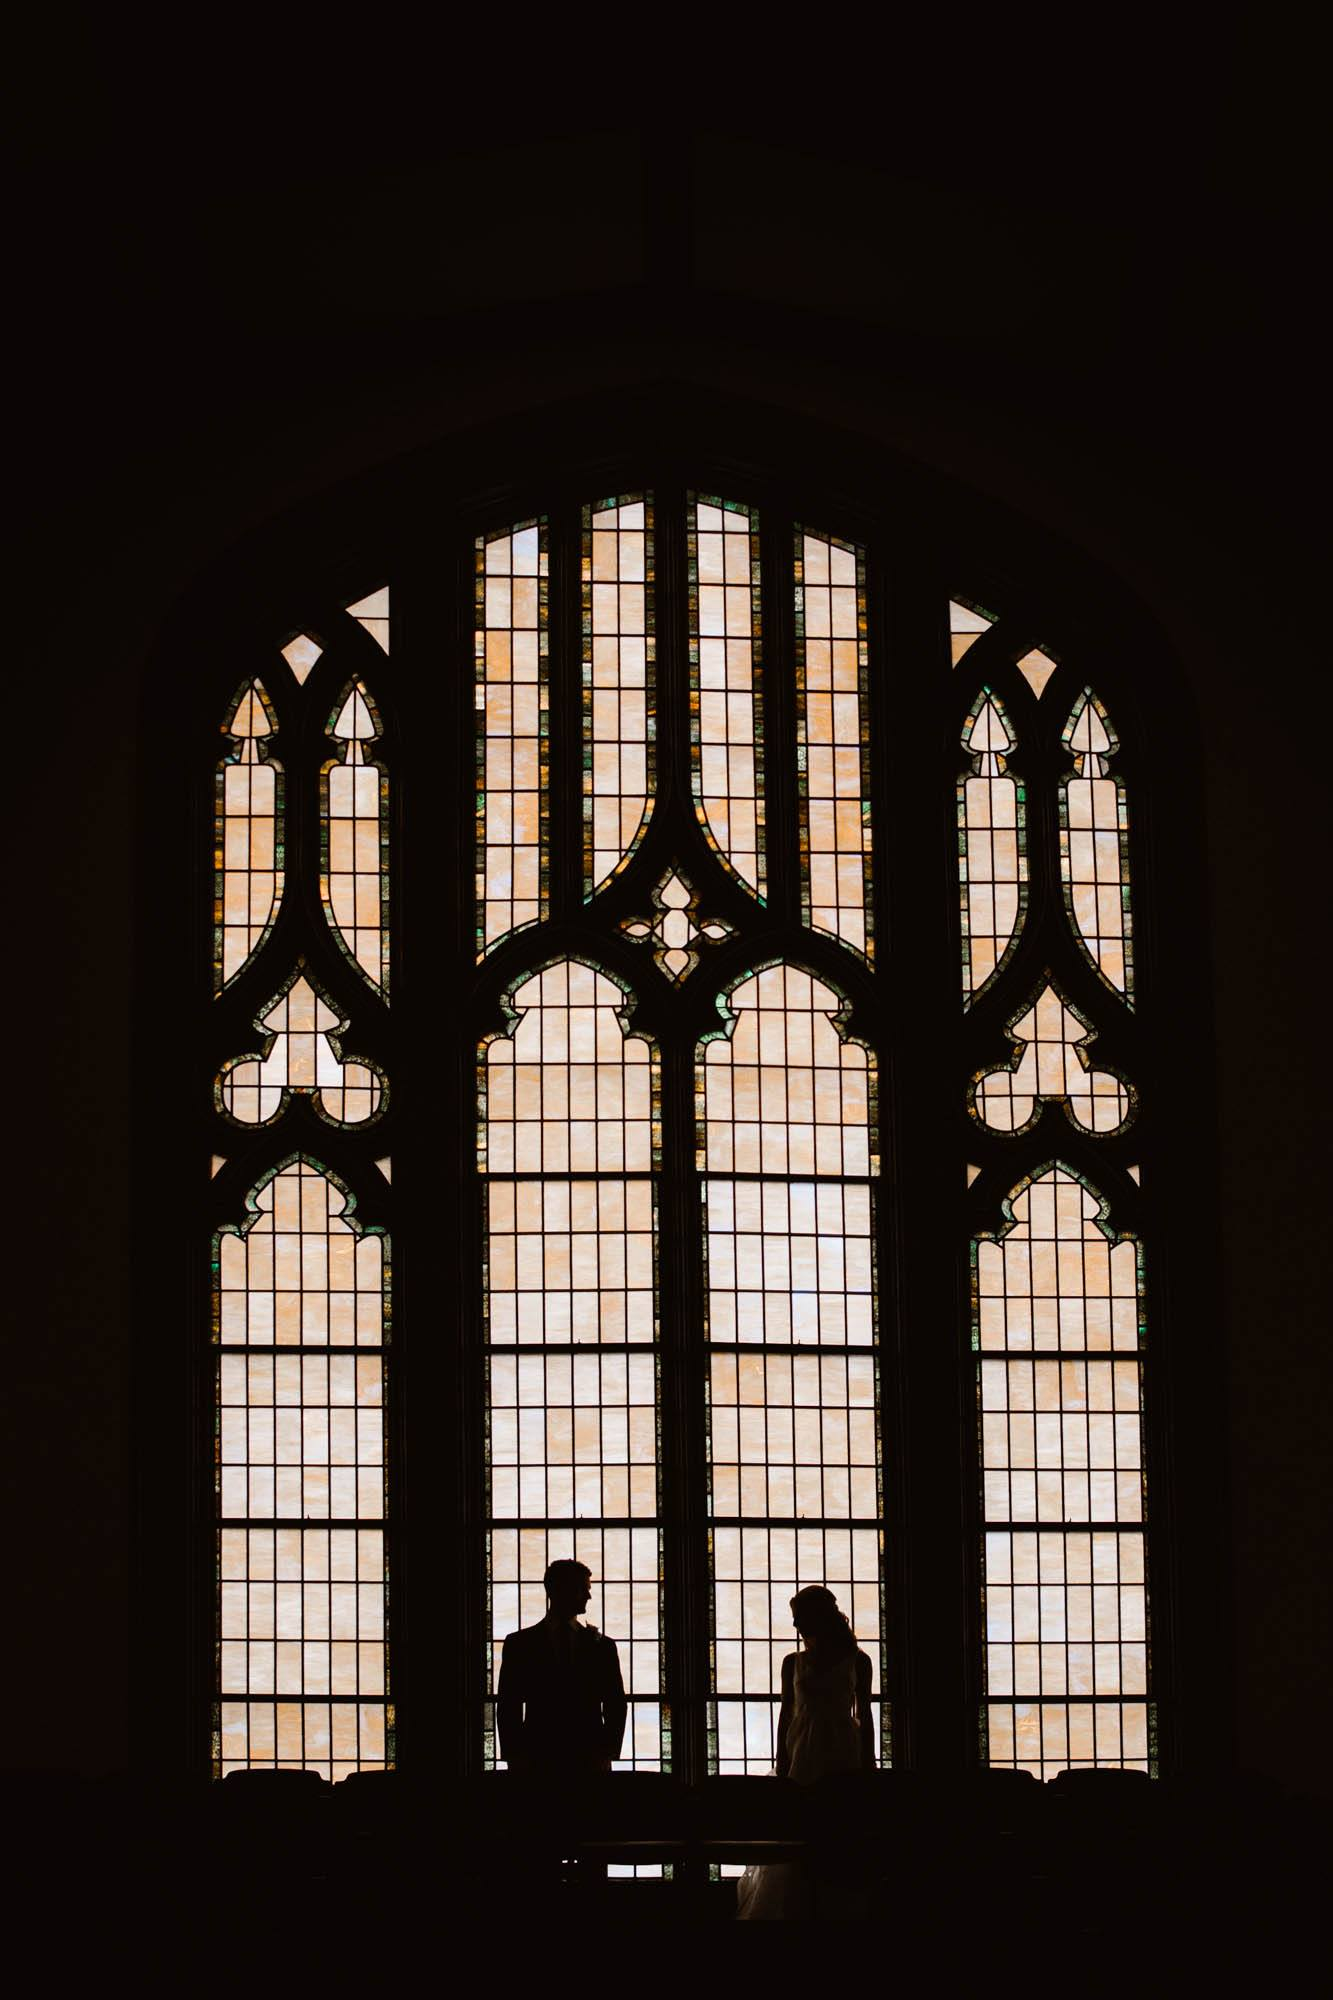 Silhouette of a bride and groom standing in front of a window in a church